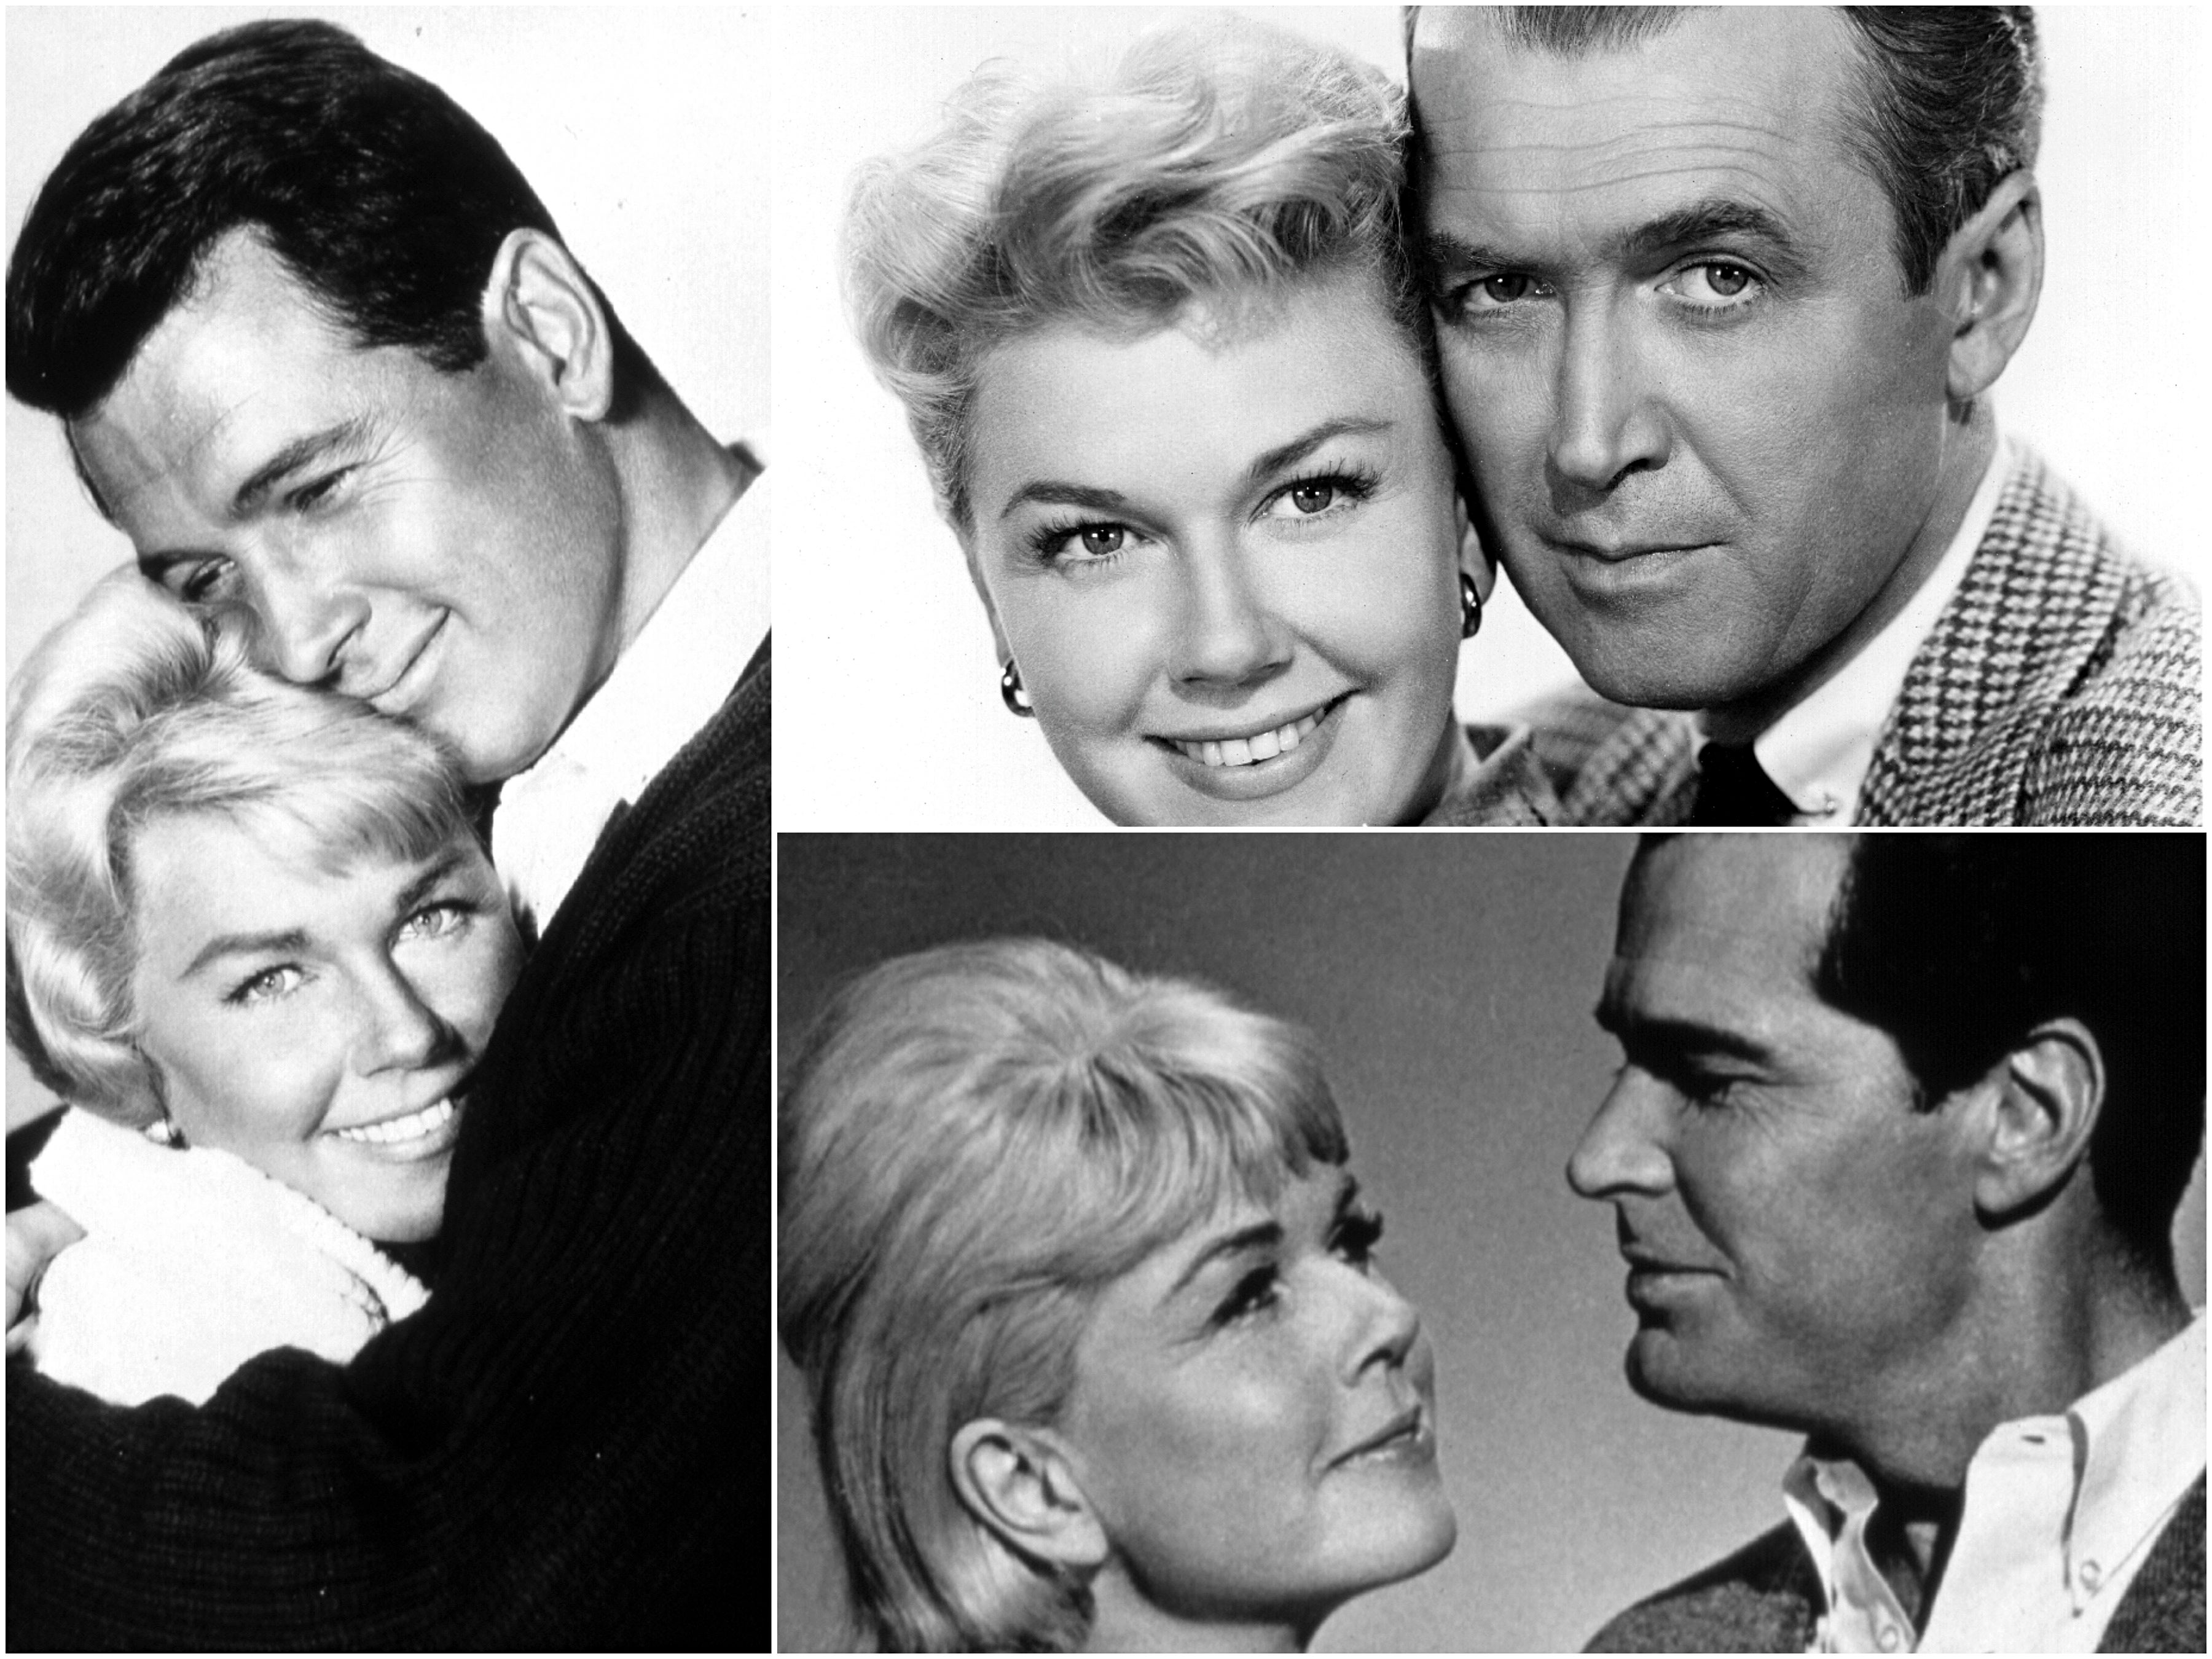 Scenes from Doris Day movies